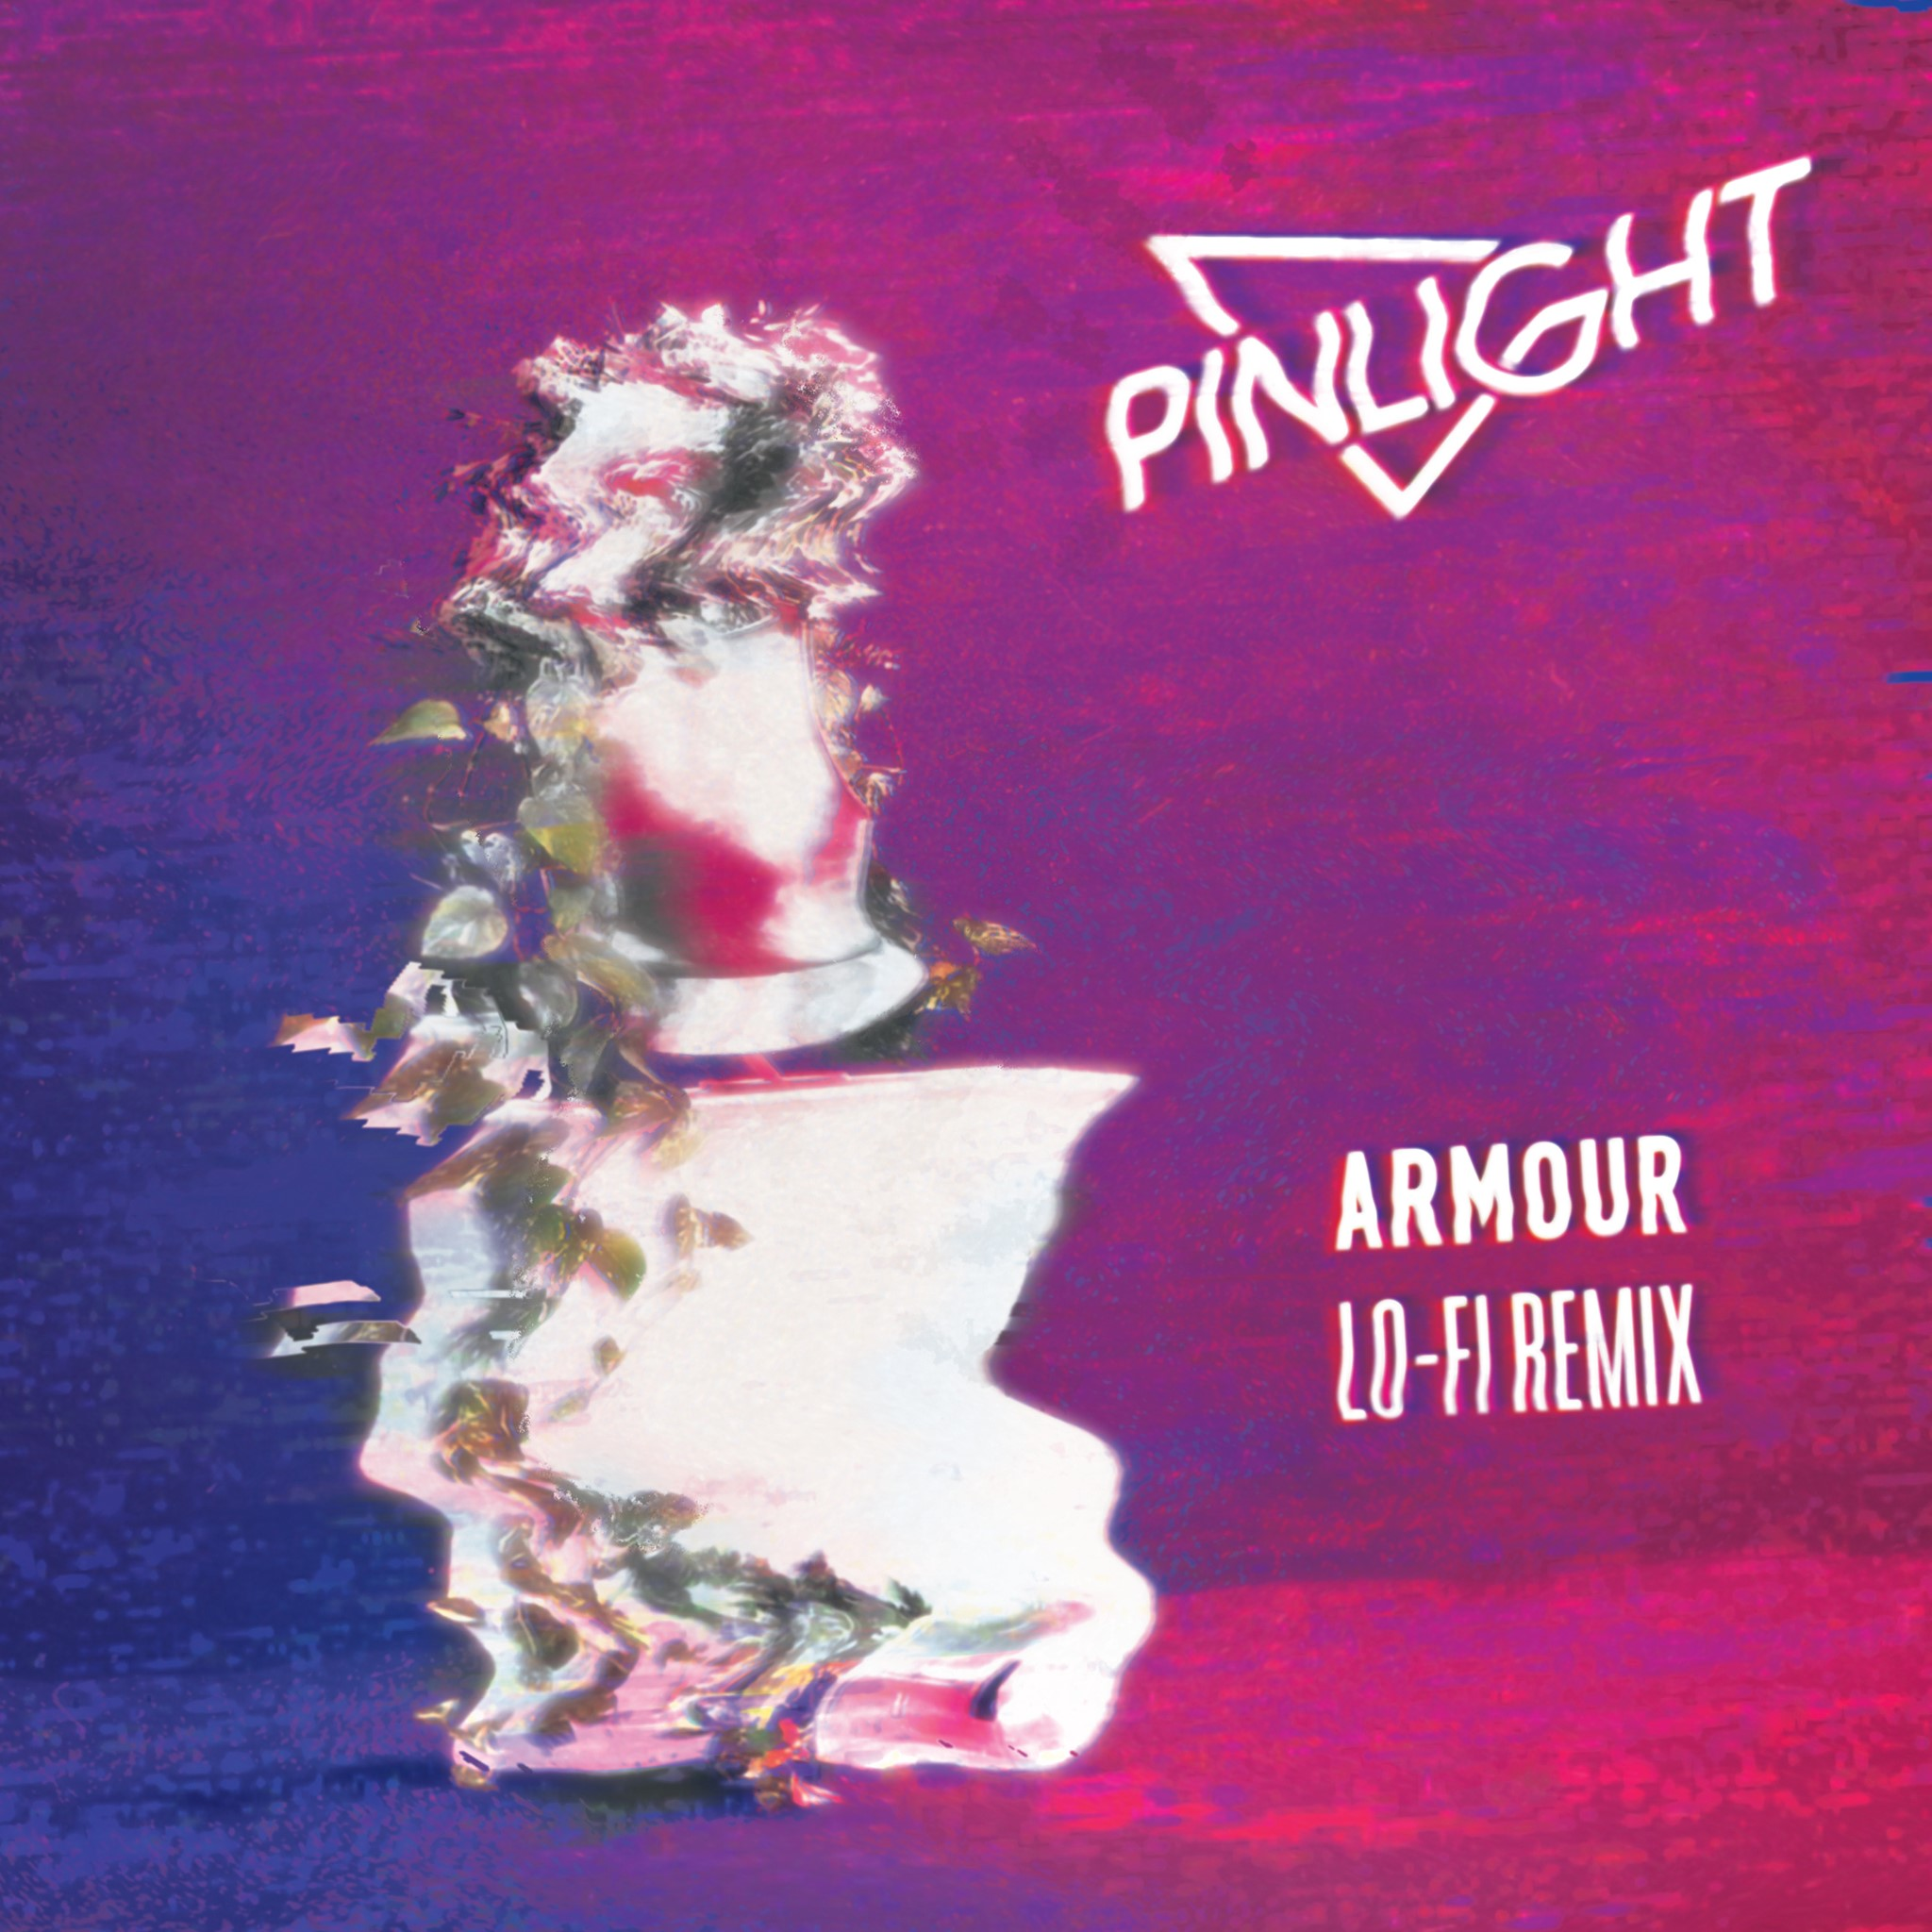 Pinlight Armour lo-fi remix